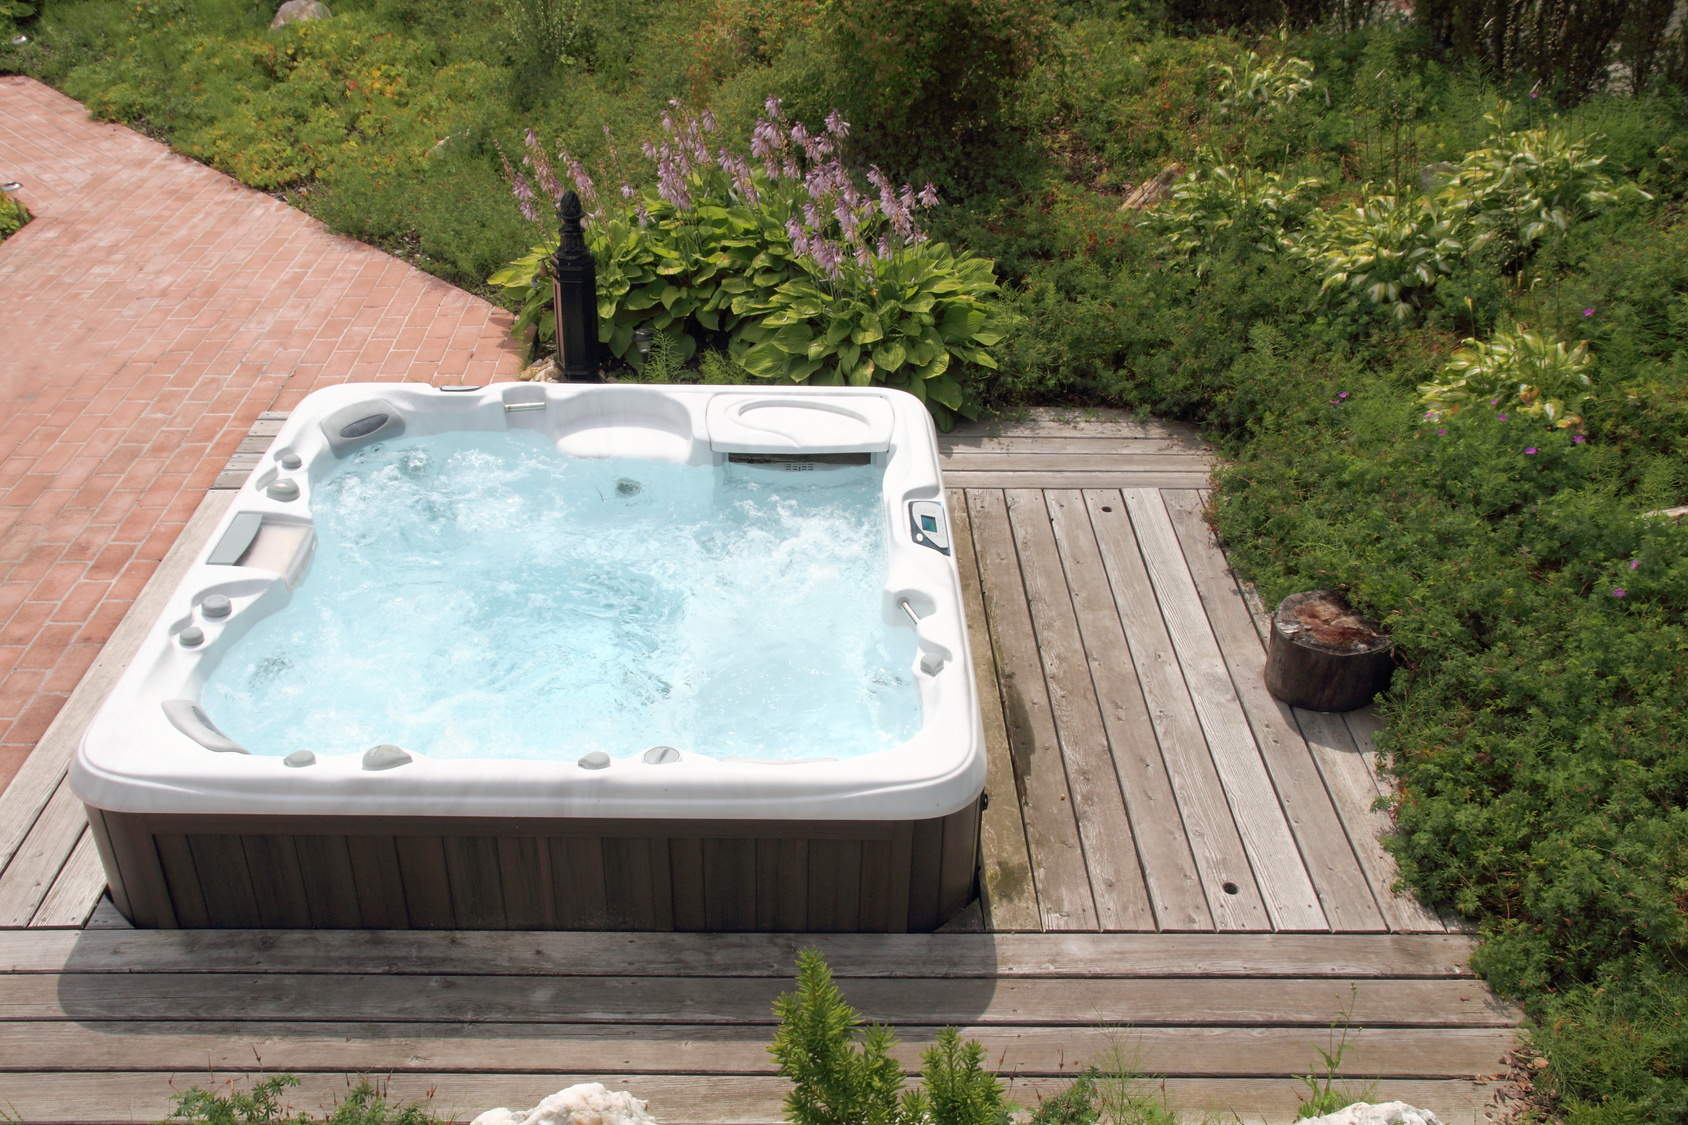 Le tarif d 39 un spa balneo ext rieur co t et devis for Jacuzzi enterre exterieur